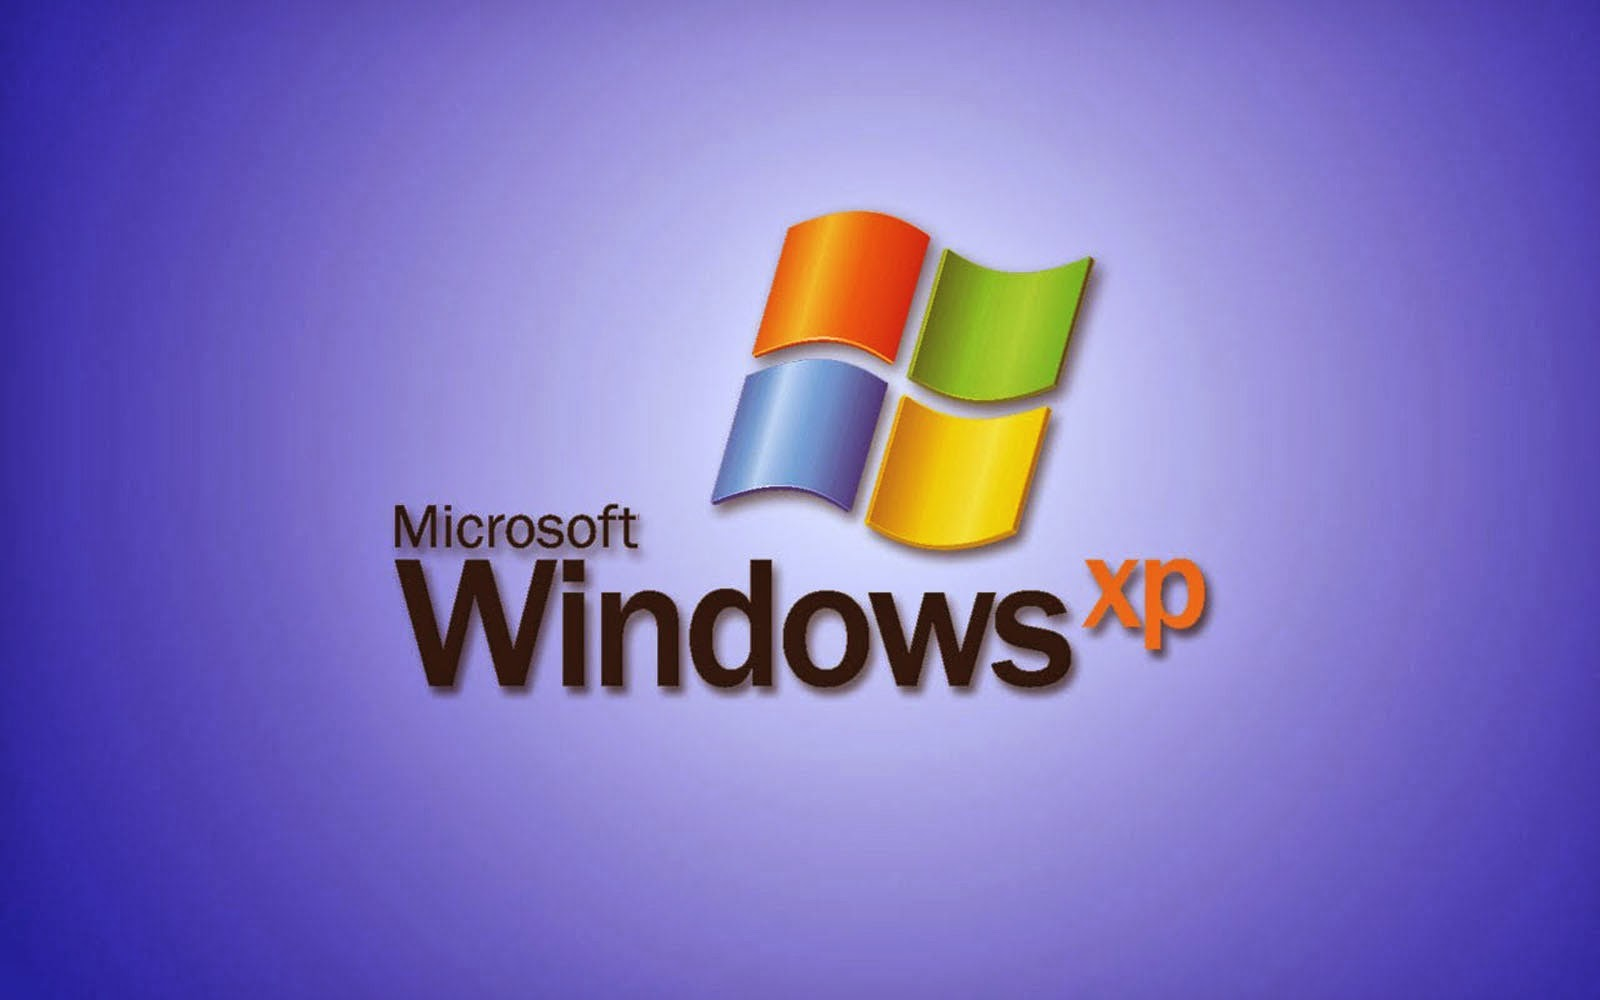 Wallpapers windows xp home wallpapers for Household wallpaper